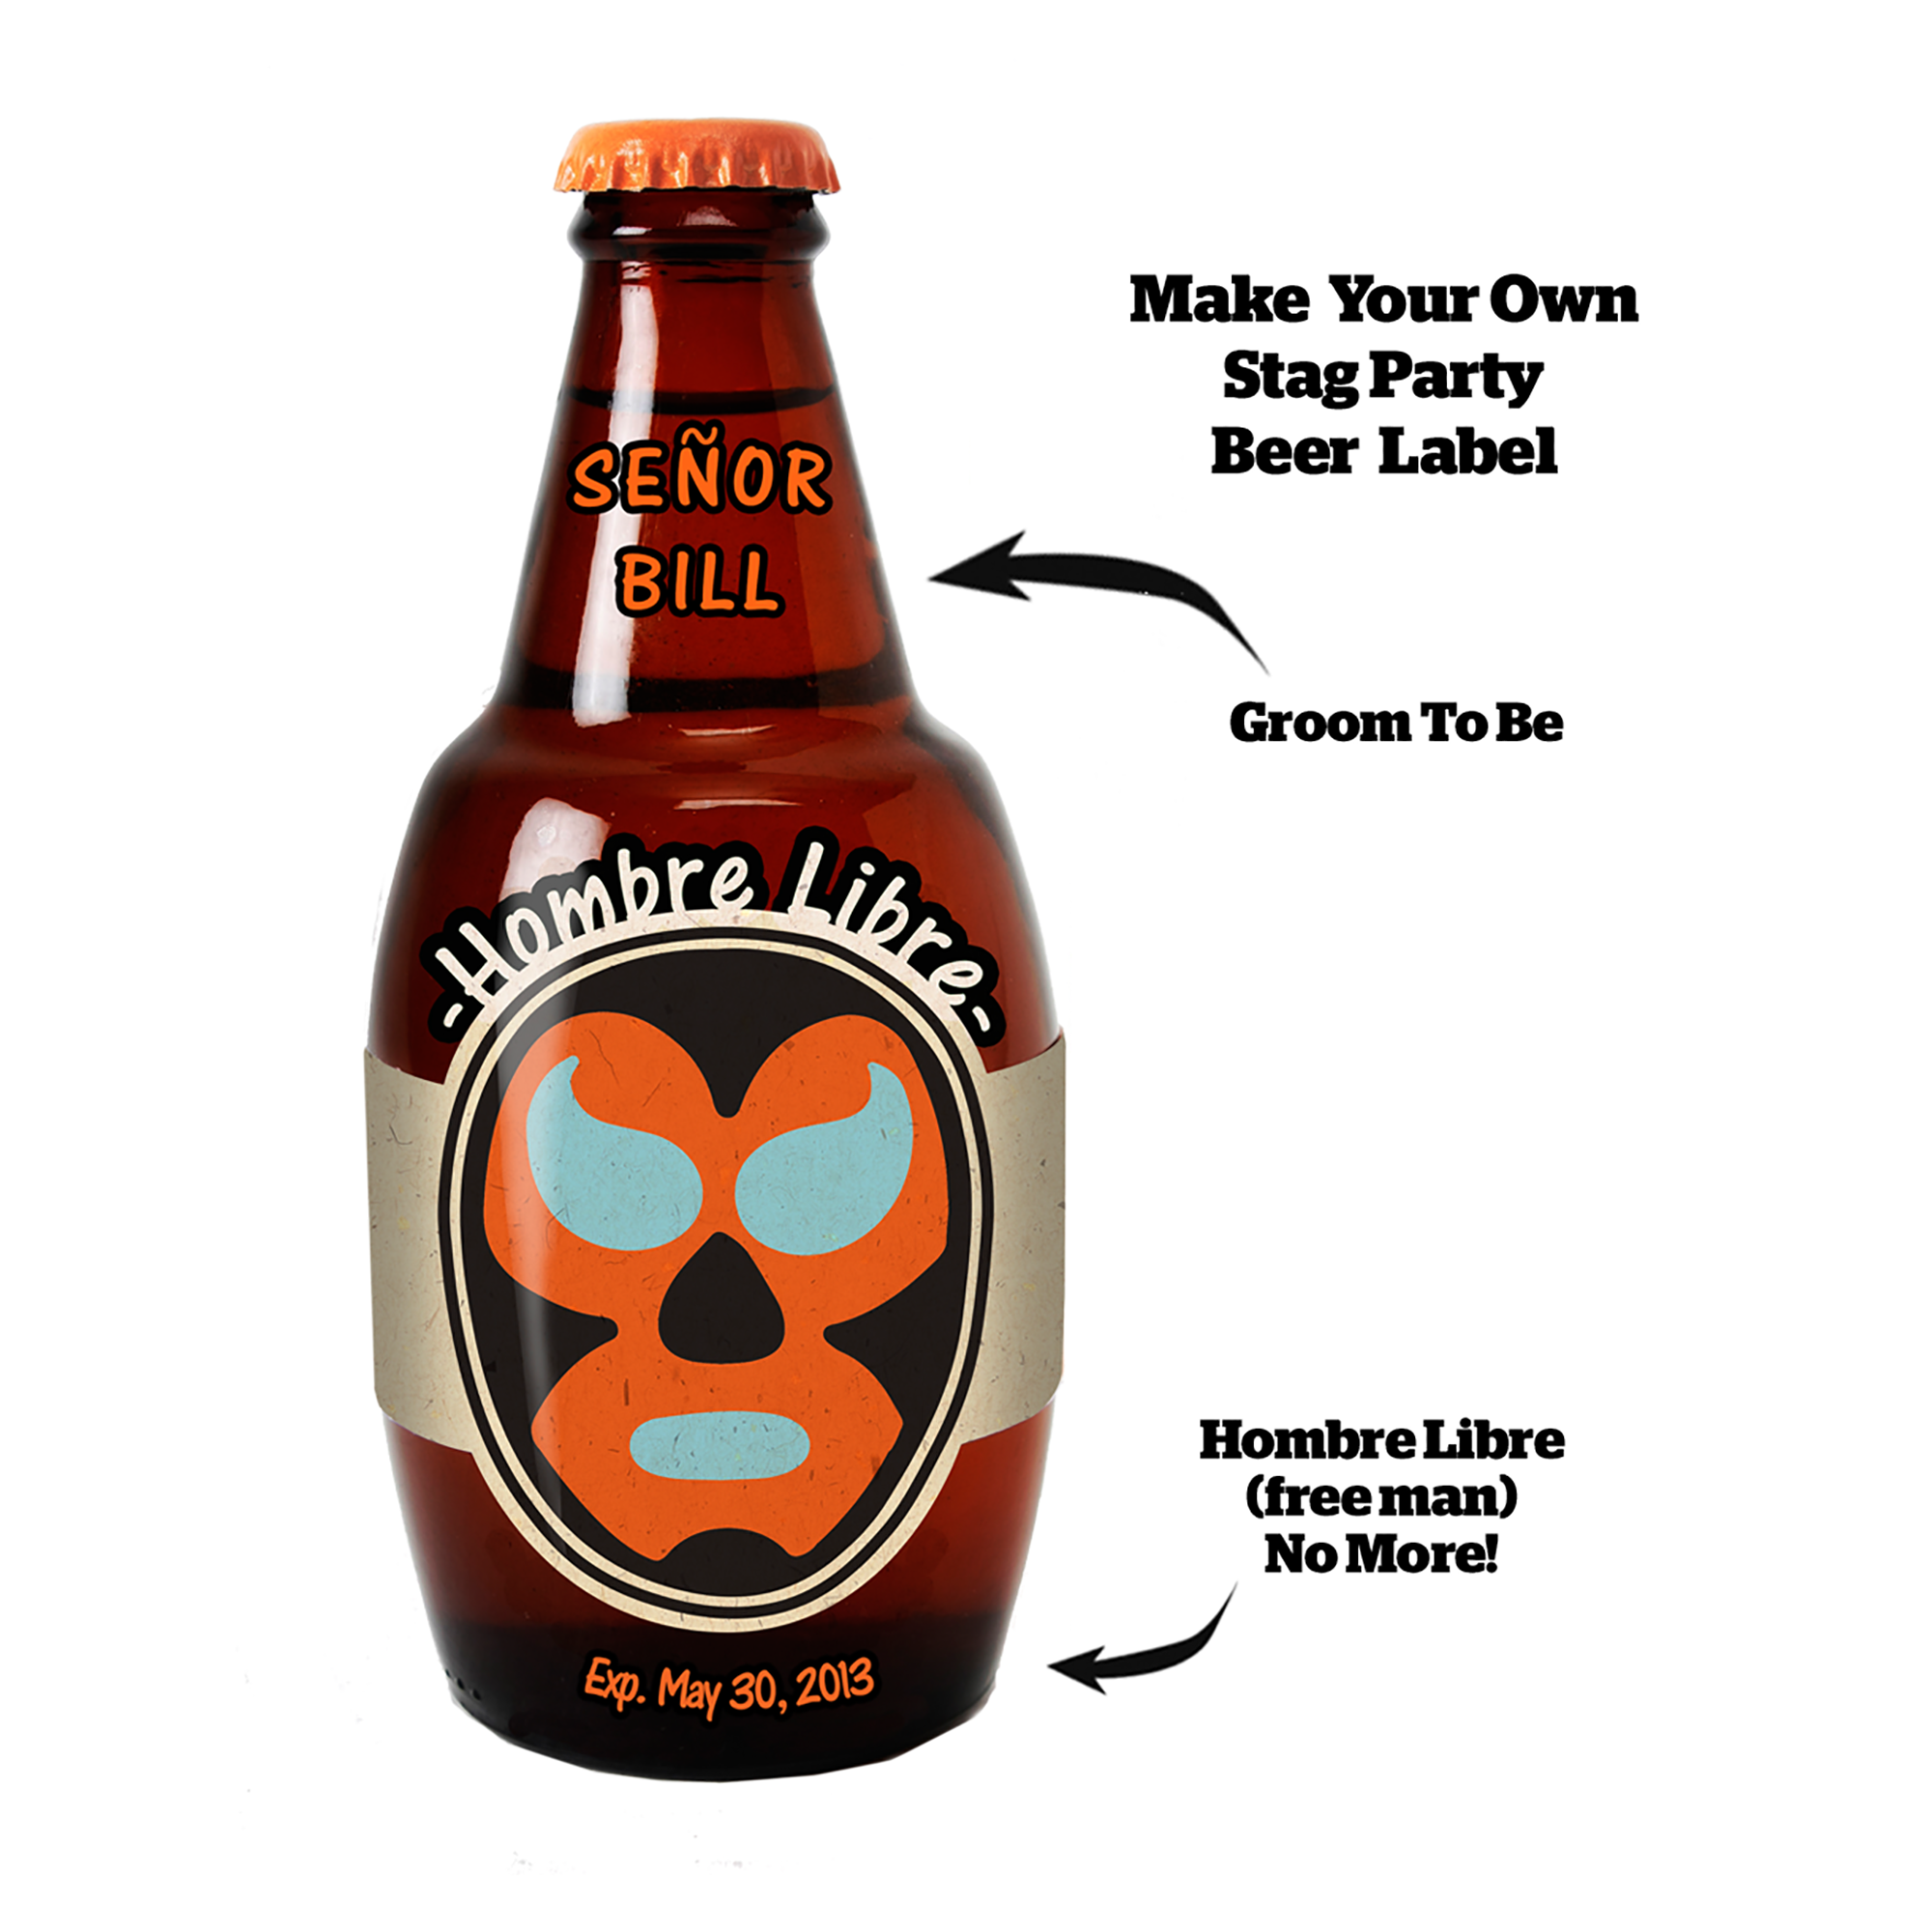 Hombre Libre - Personalize this Beer Label for a Digitally Printed T-shirt